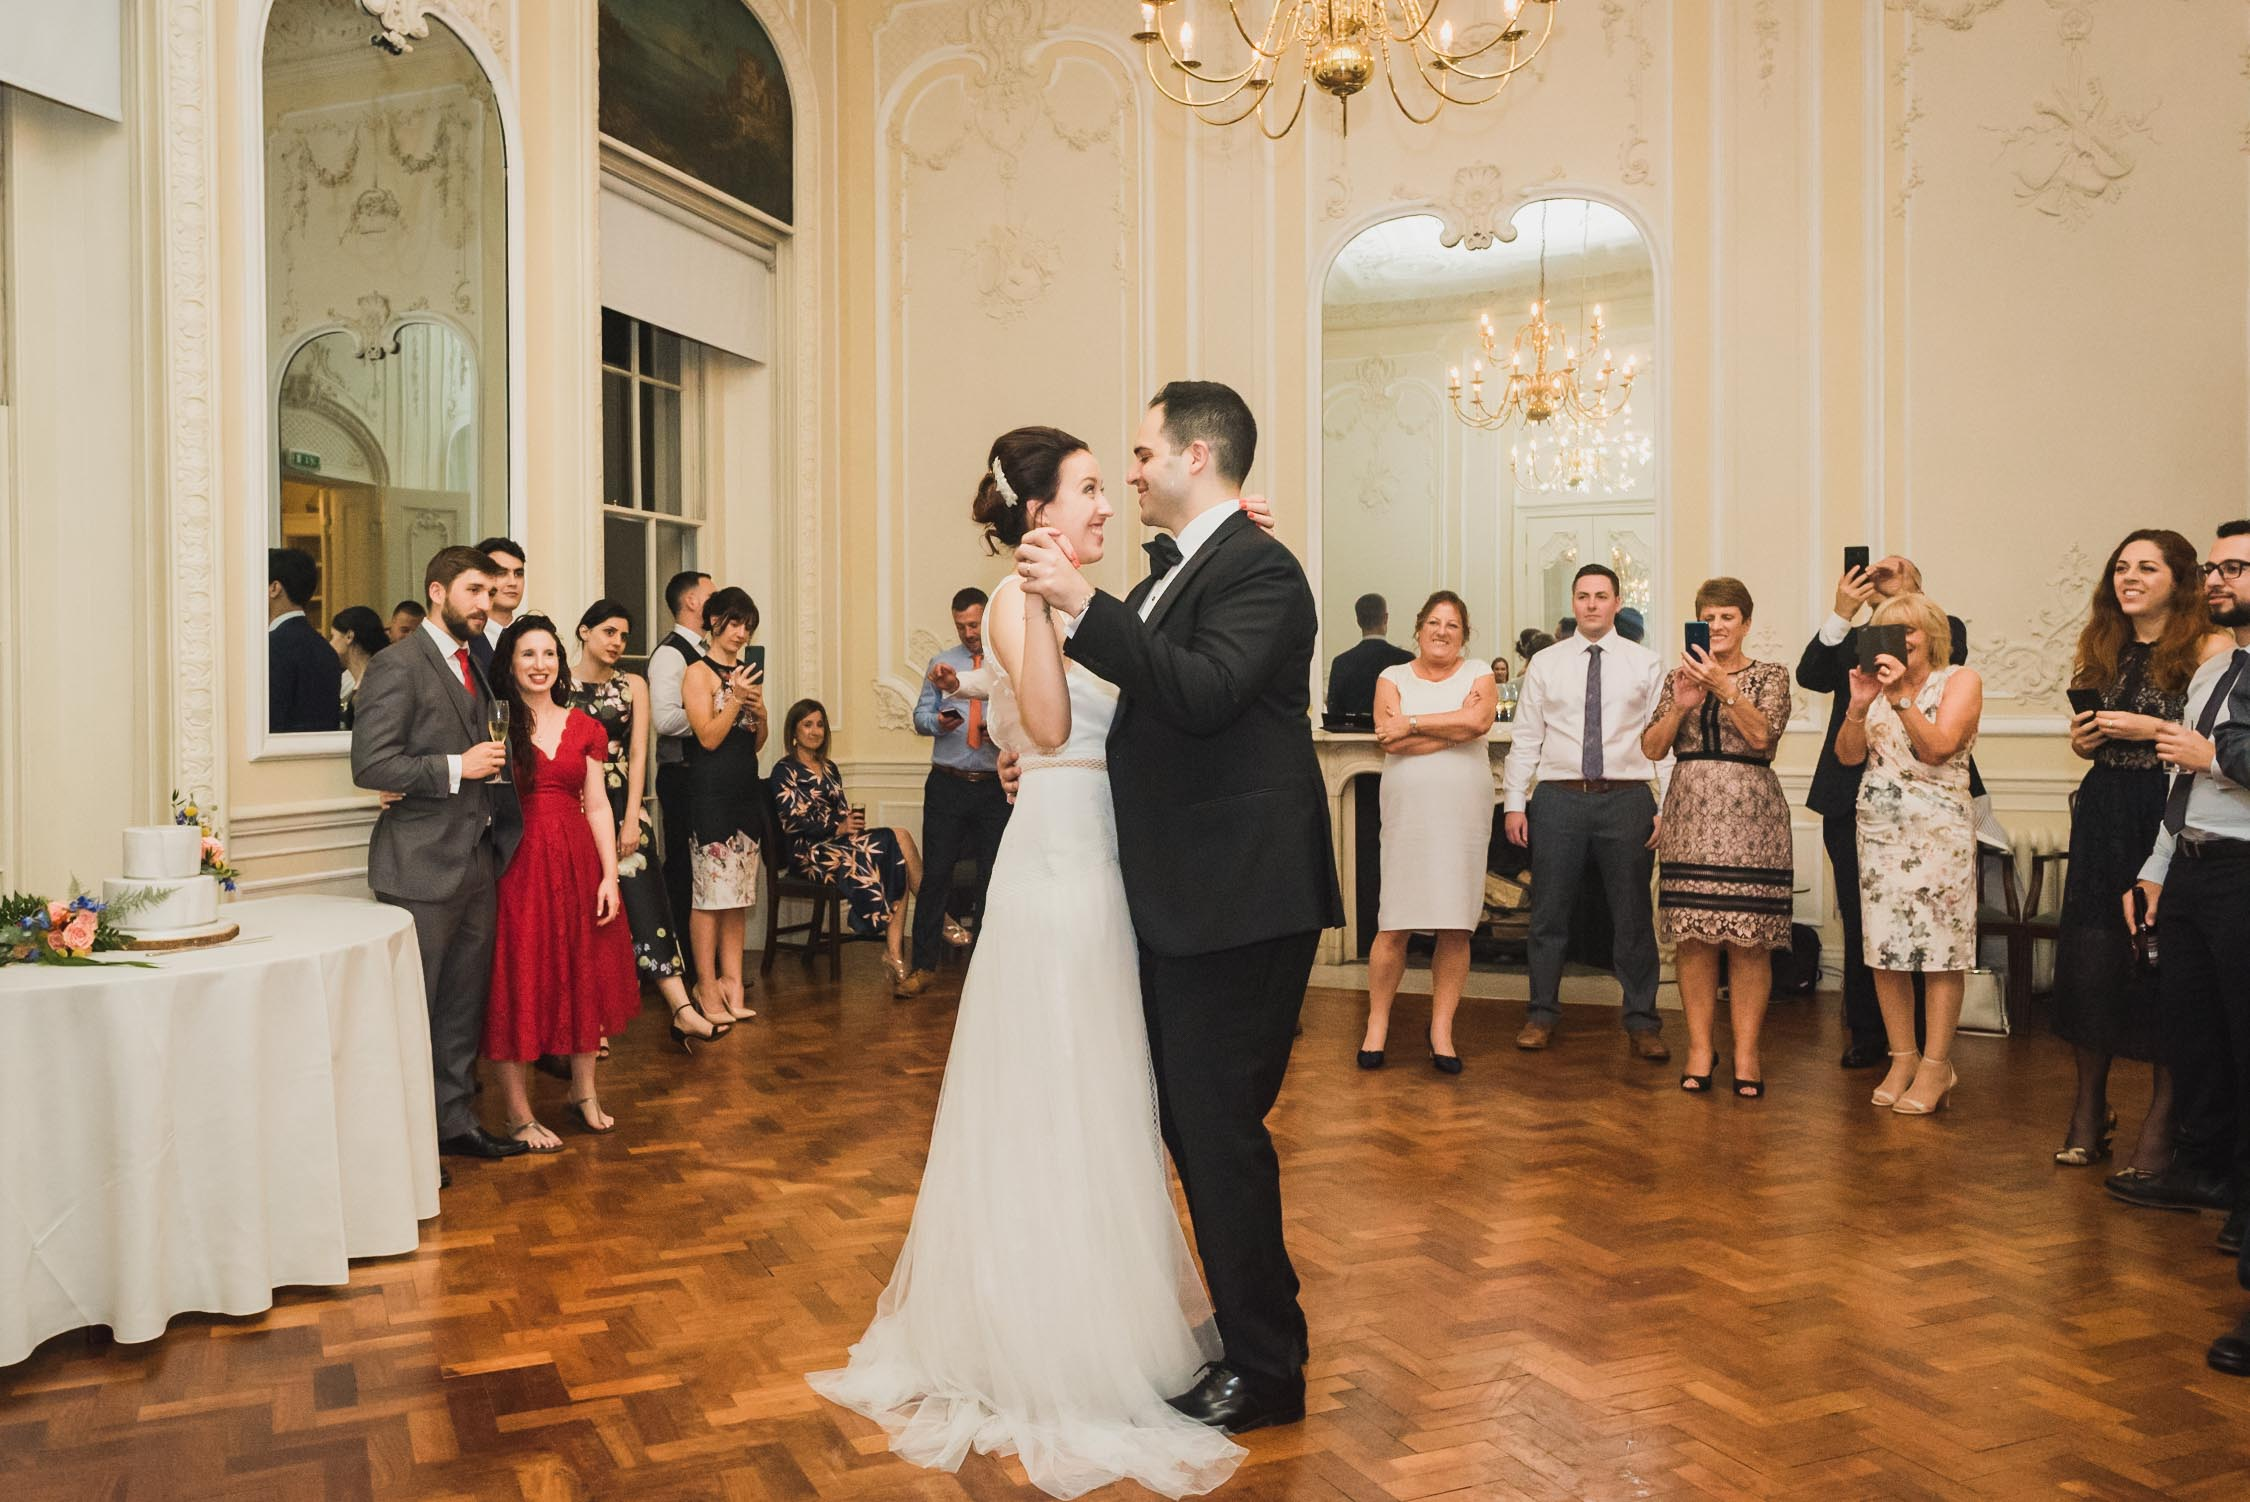 carine bea photography, first dance wedding Carlton House Terrace London